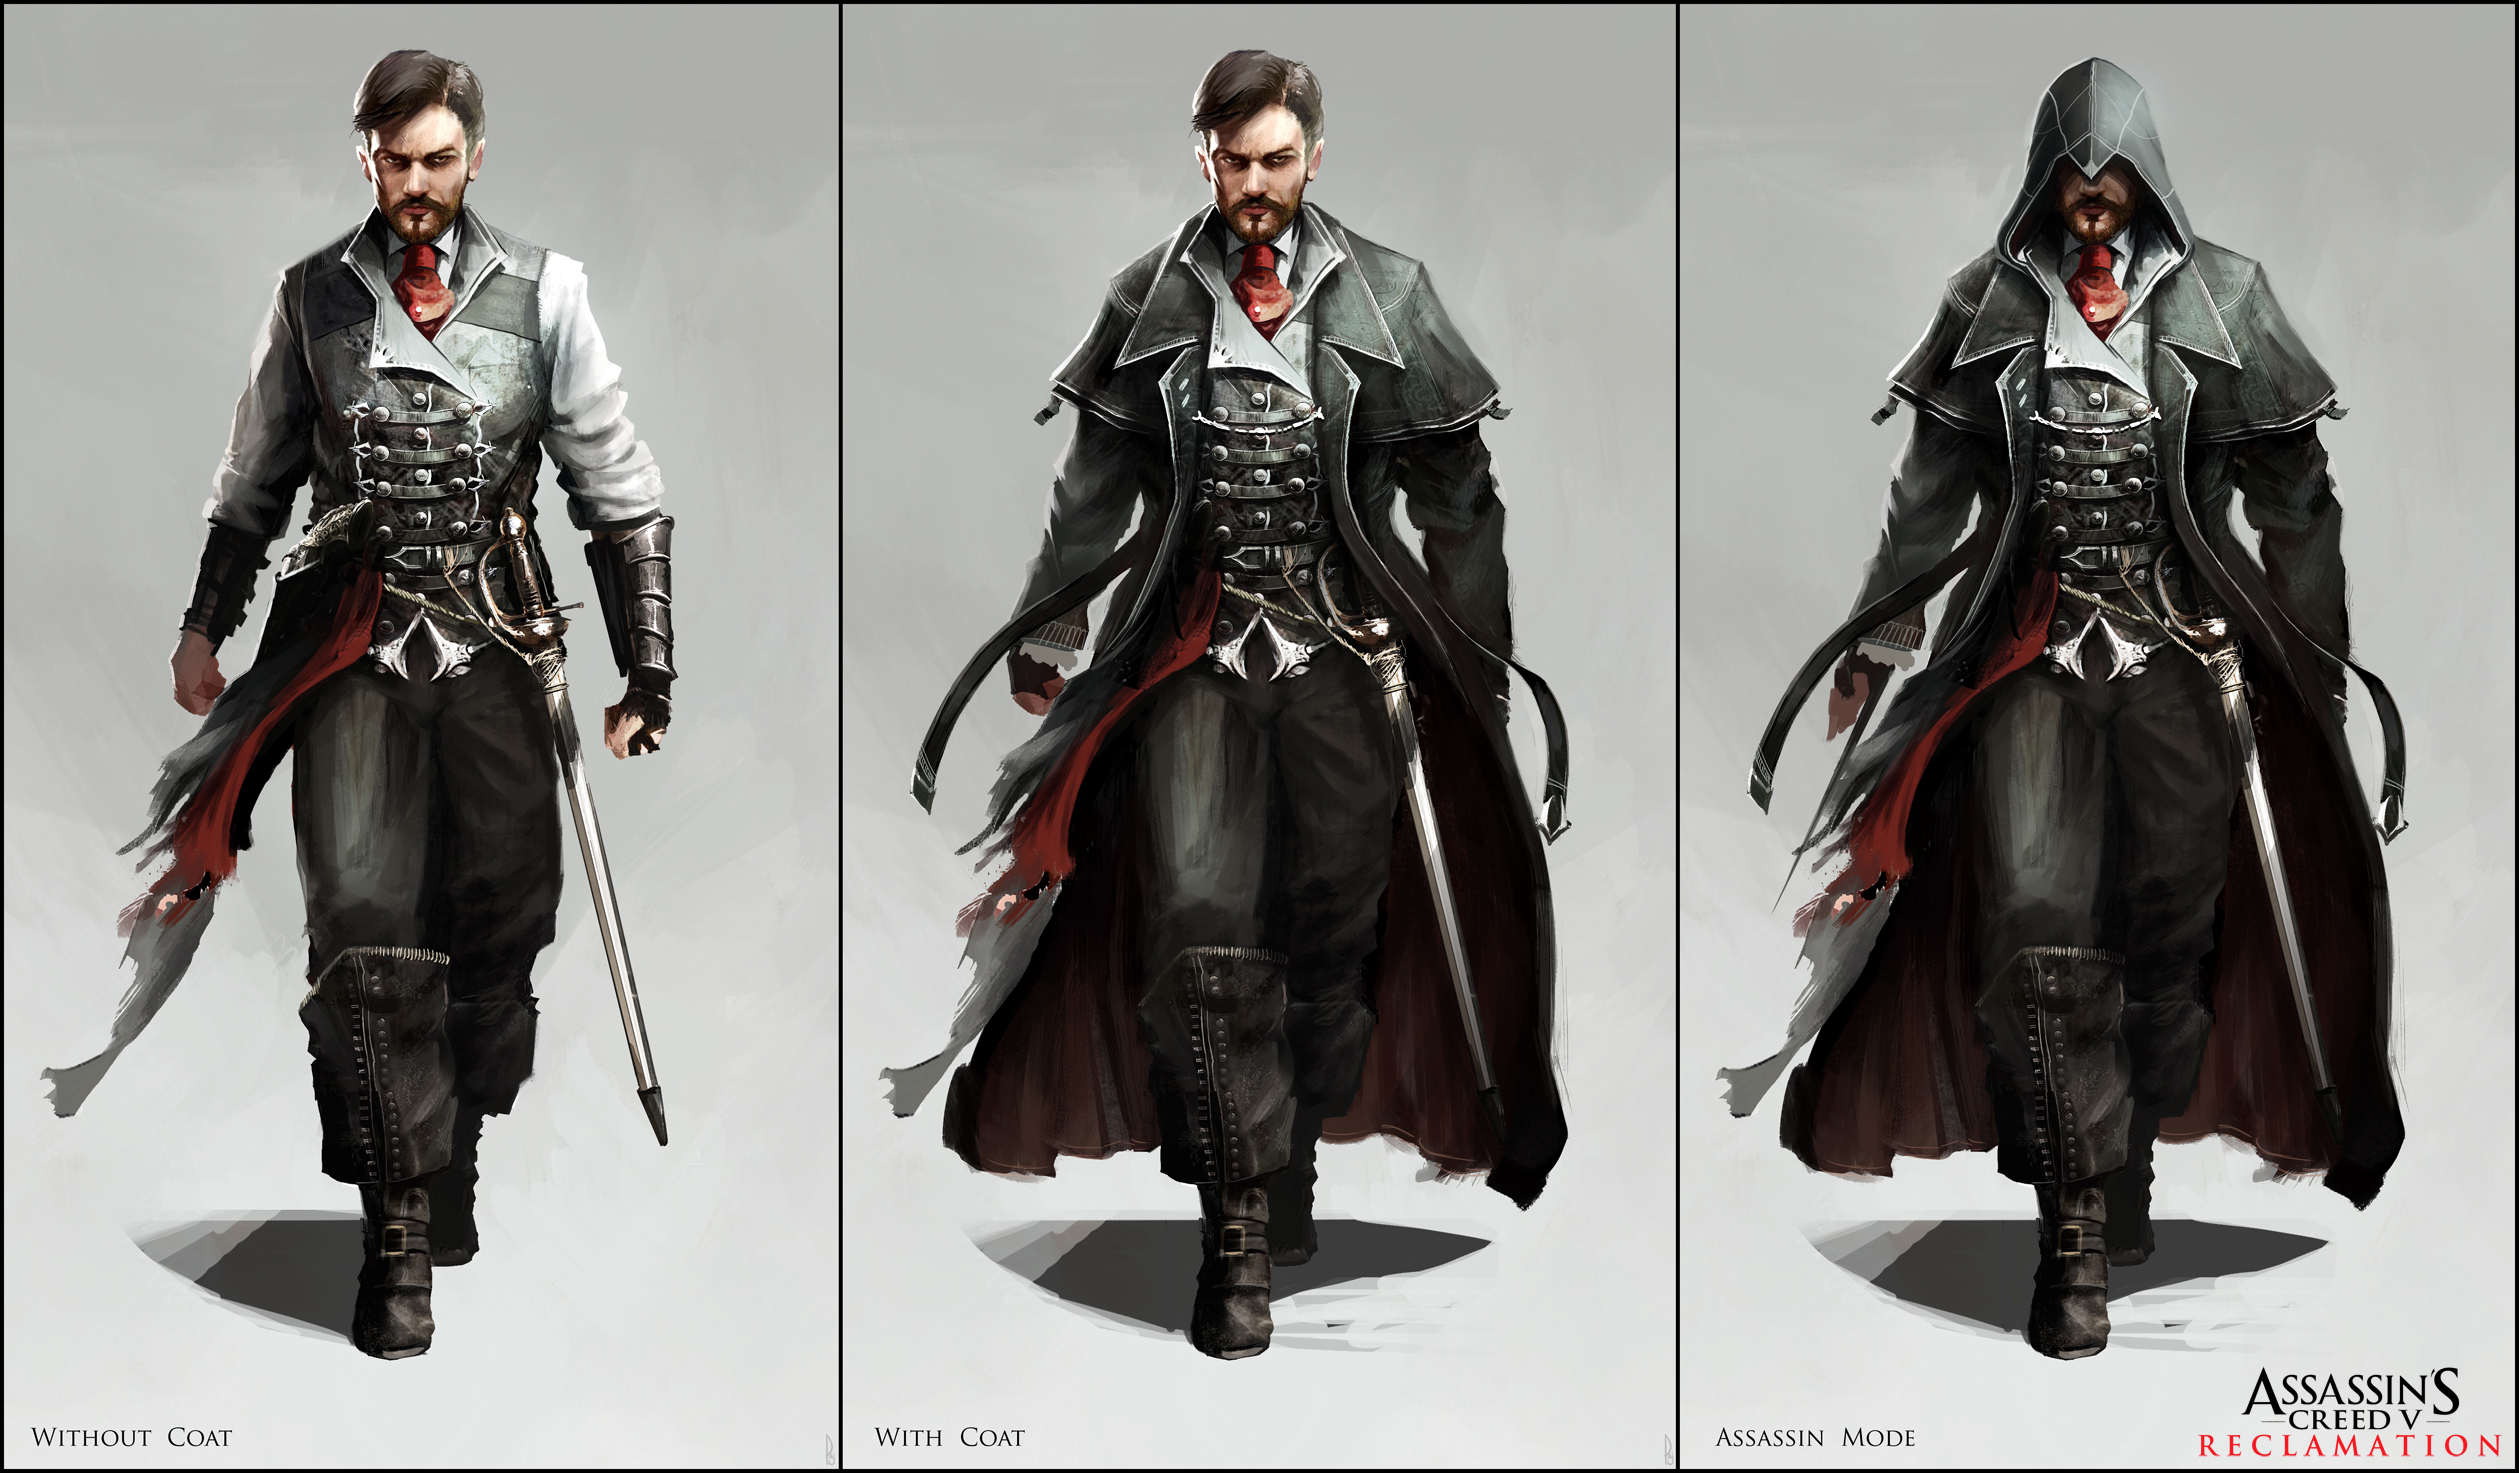 Character Design London : Assassin s creed v character designs by happy mutt on